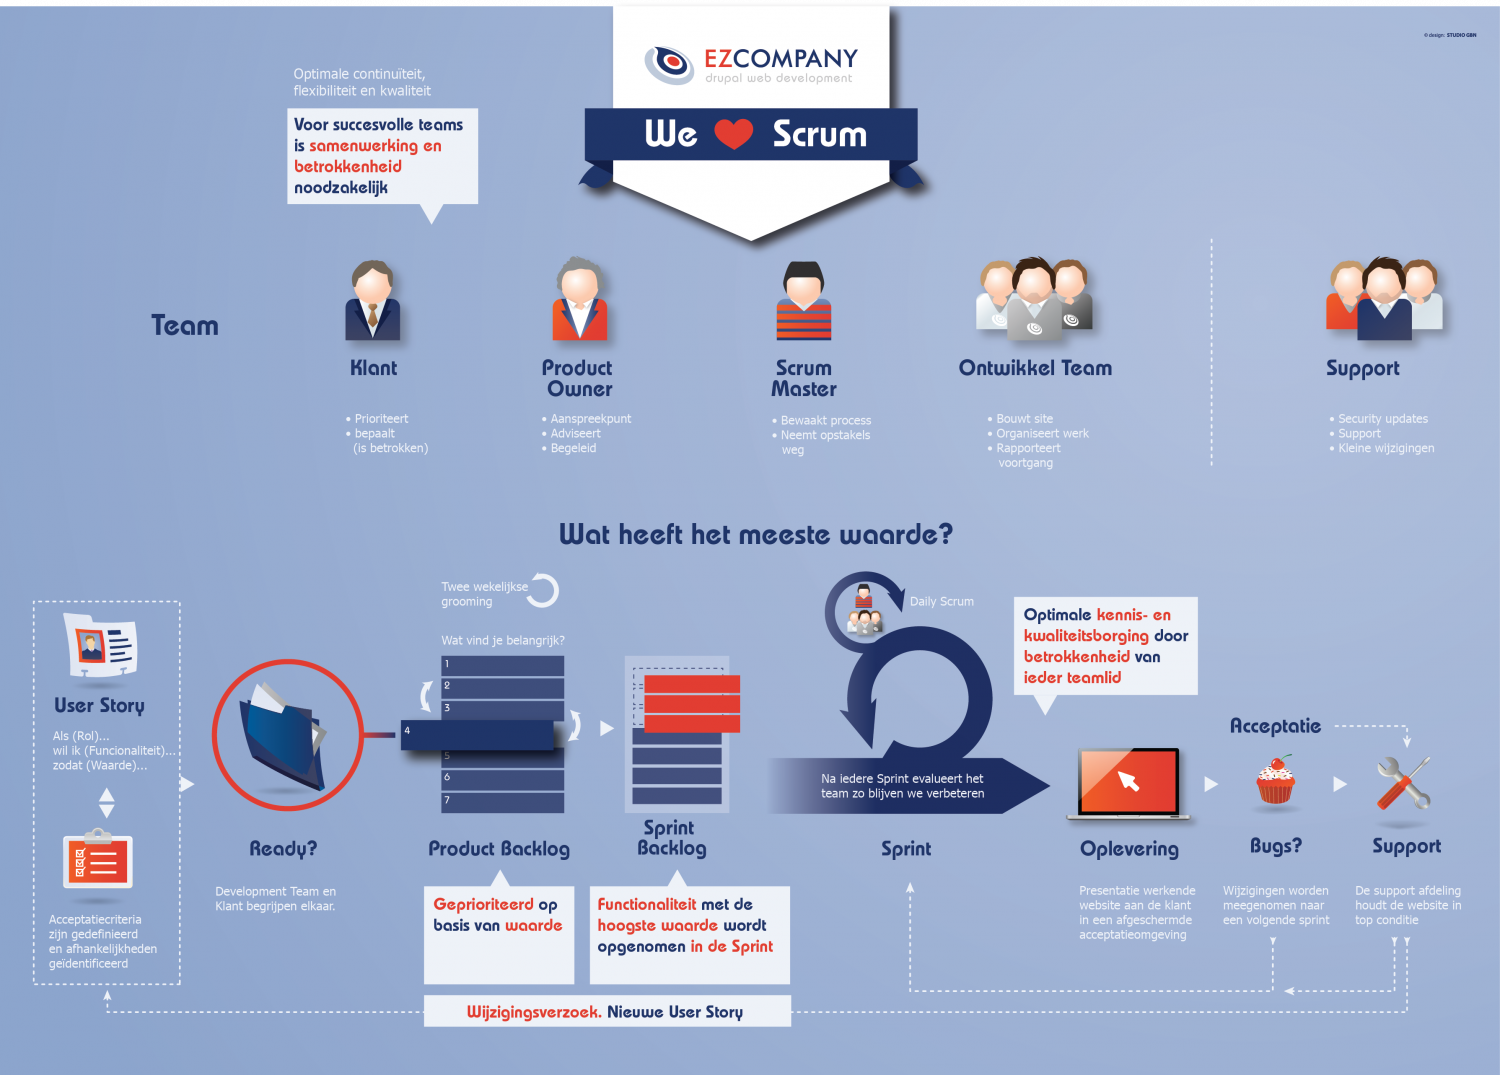 EZ company - We Love Scrum Infographic